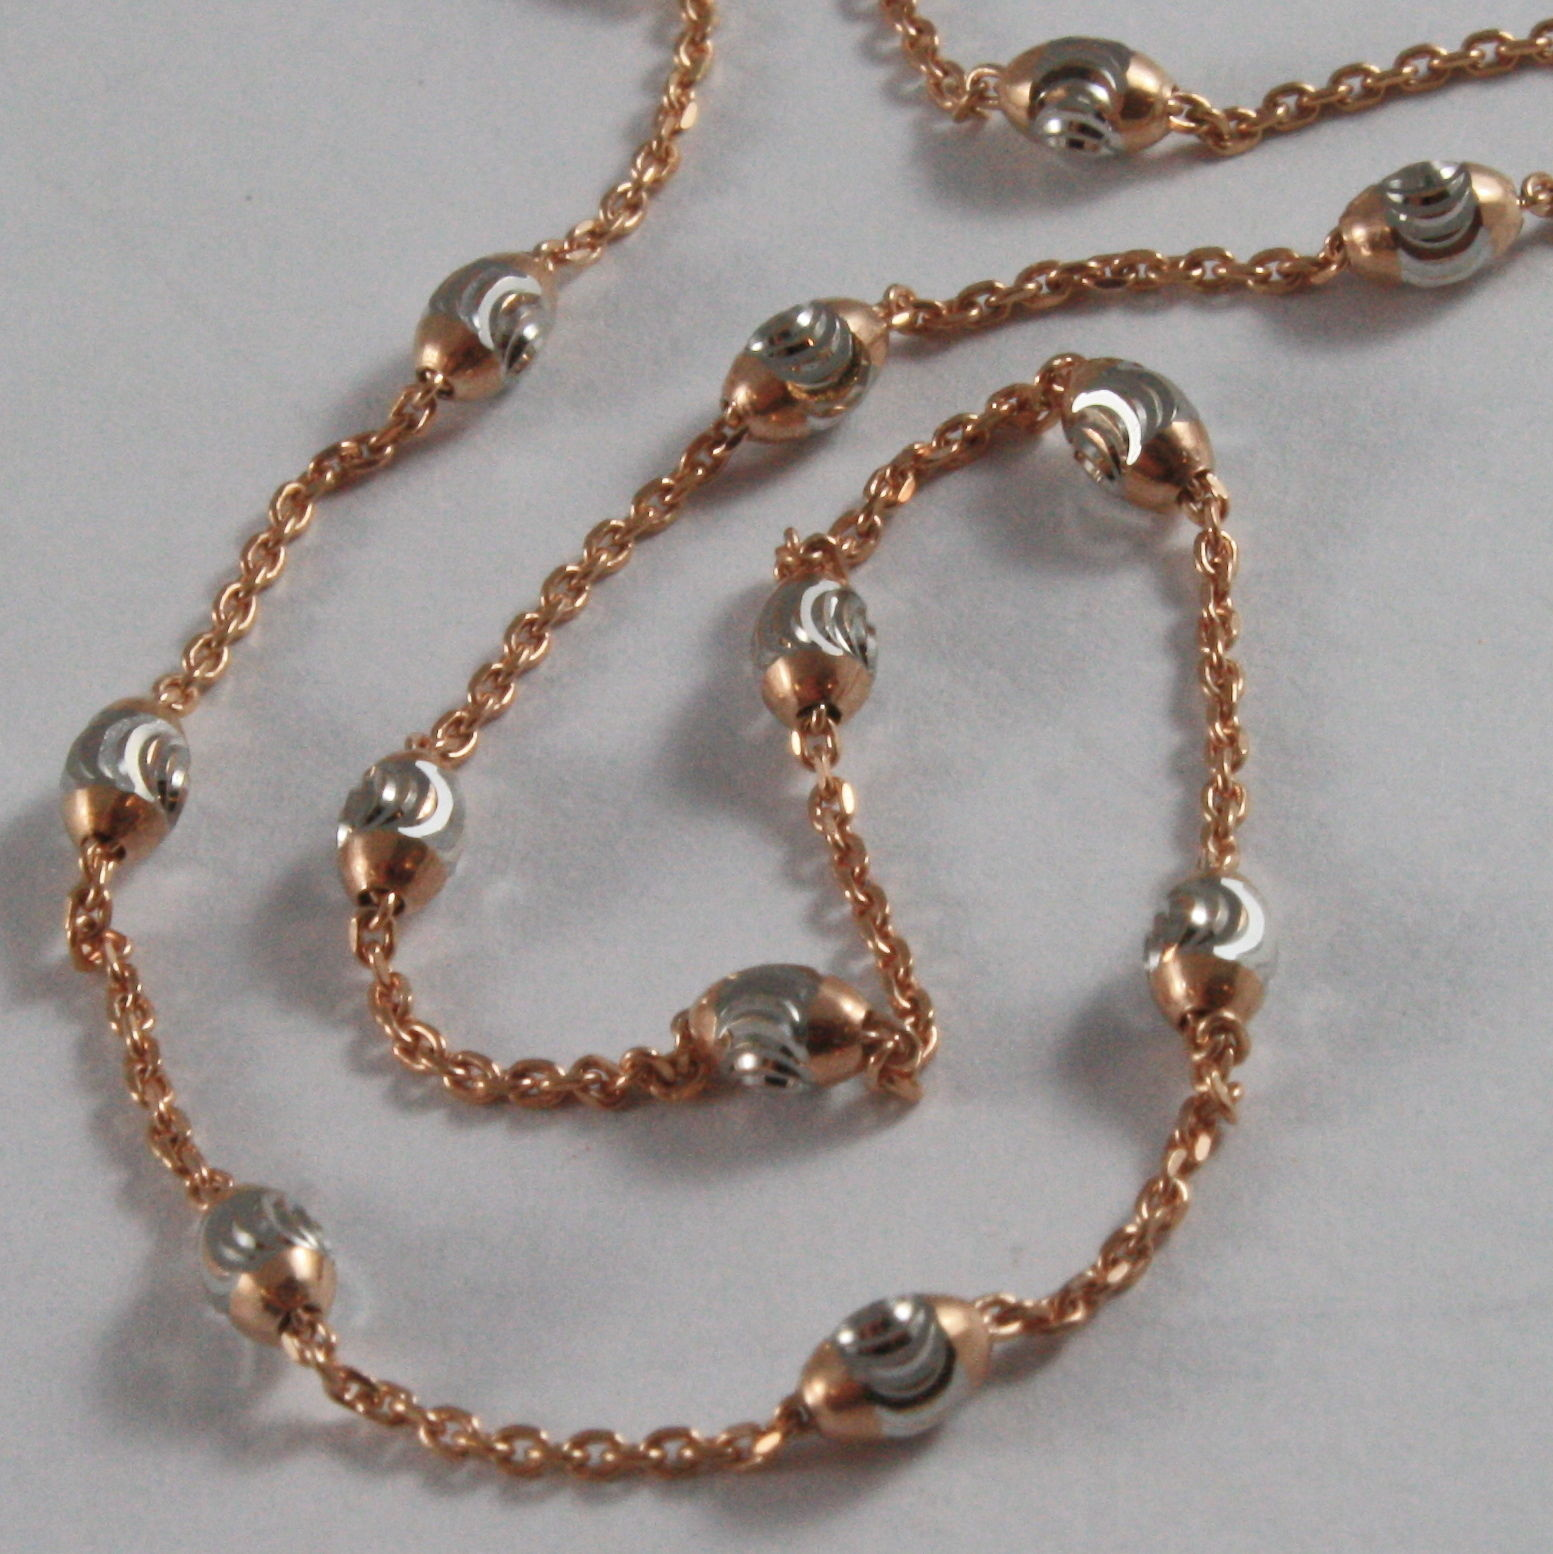 SOLID 18K ROSE & WHITE GOLD CHAIN NECKLACE MINI BALLS LINK 17.71 MADE IN ITALY